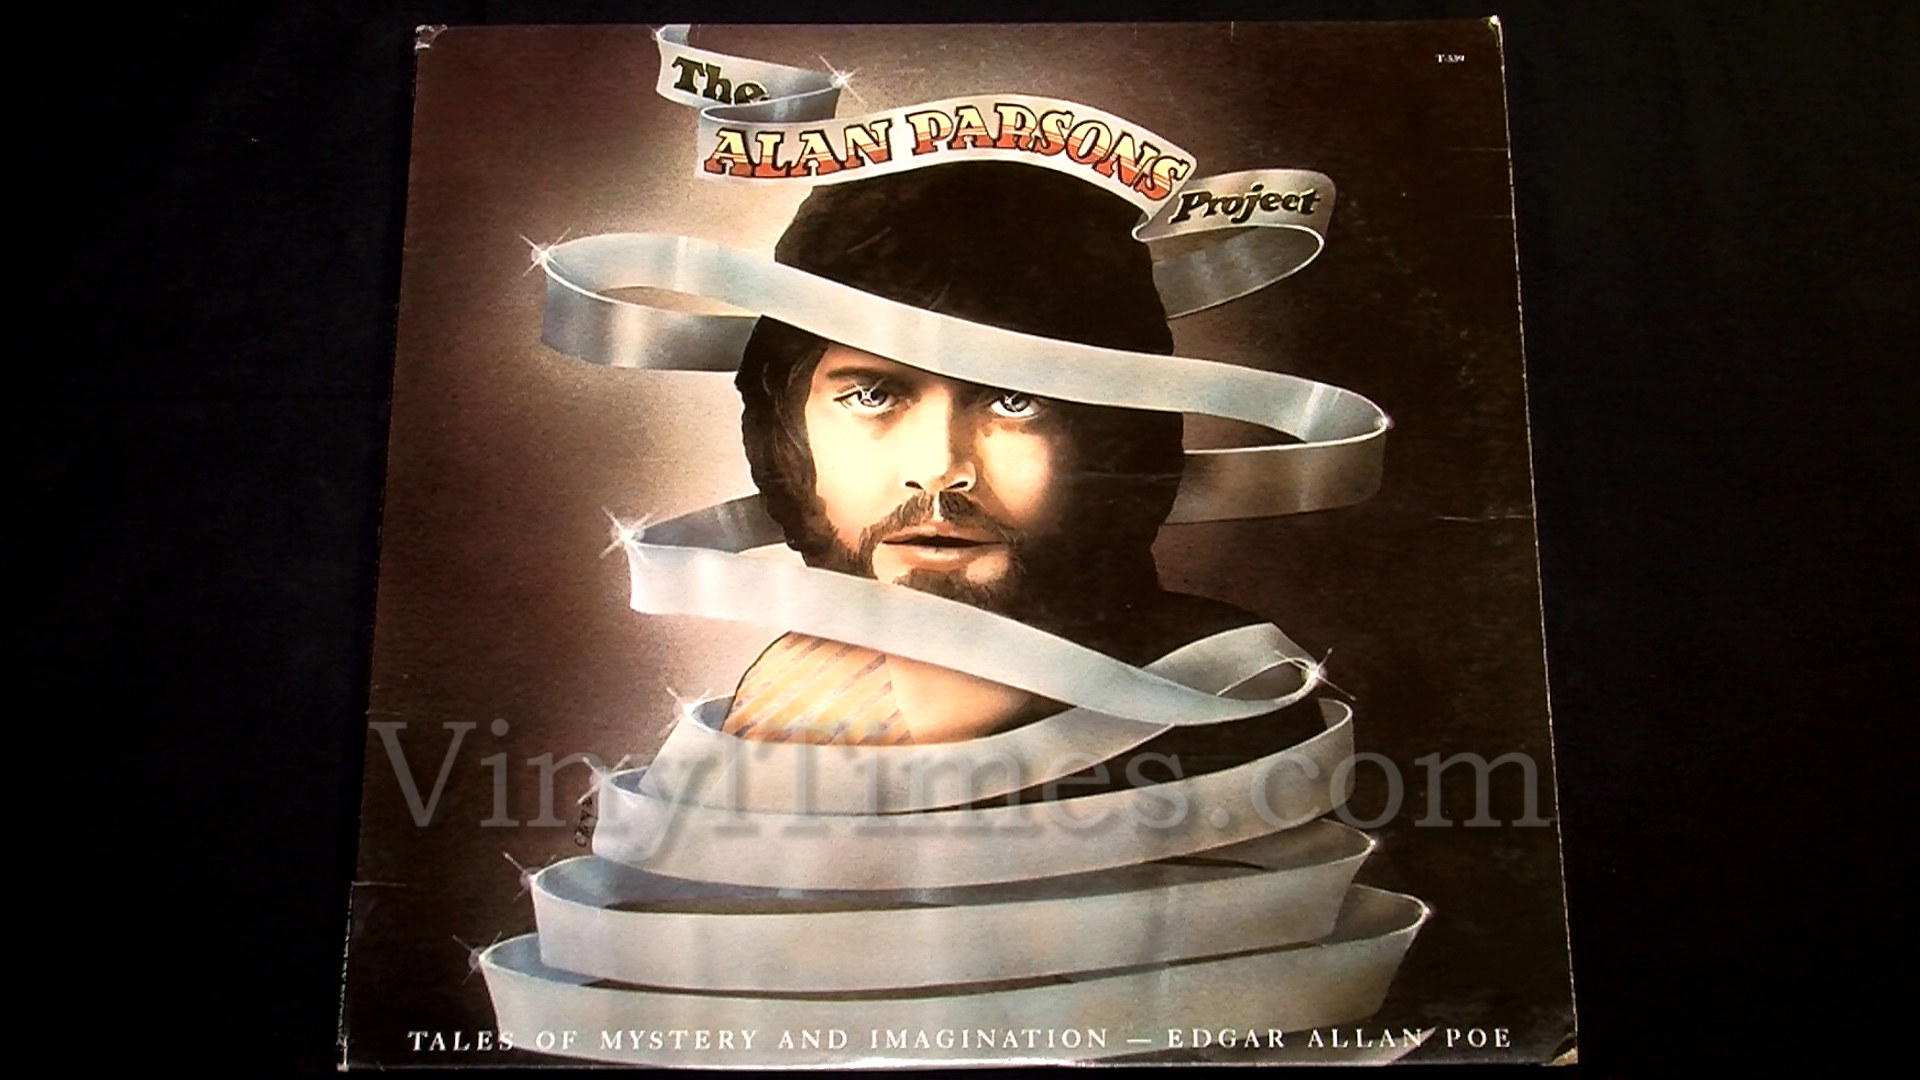 """Alan Parsons Project - """"Tales of Mystery And Imagination - Edgar Allan Poe"""" Vinyl LP Record Album"""